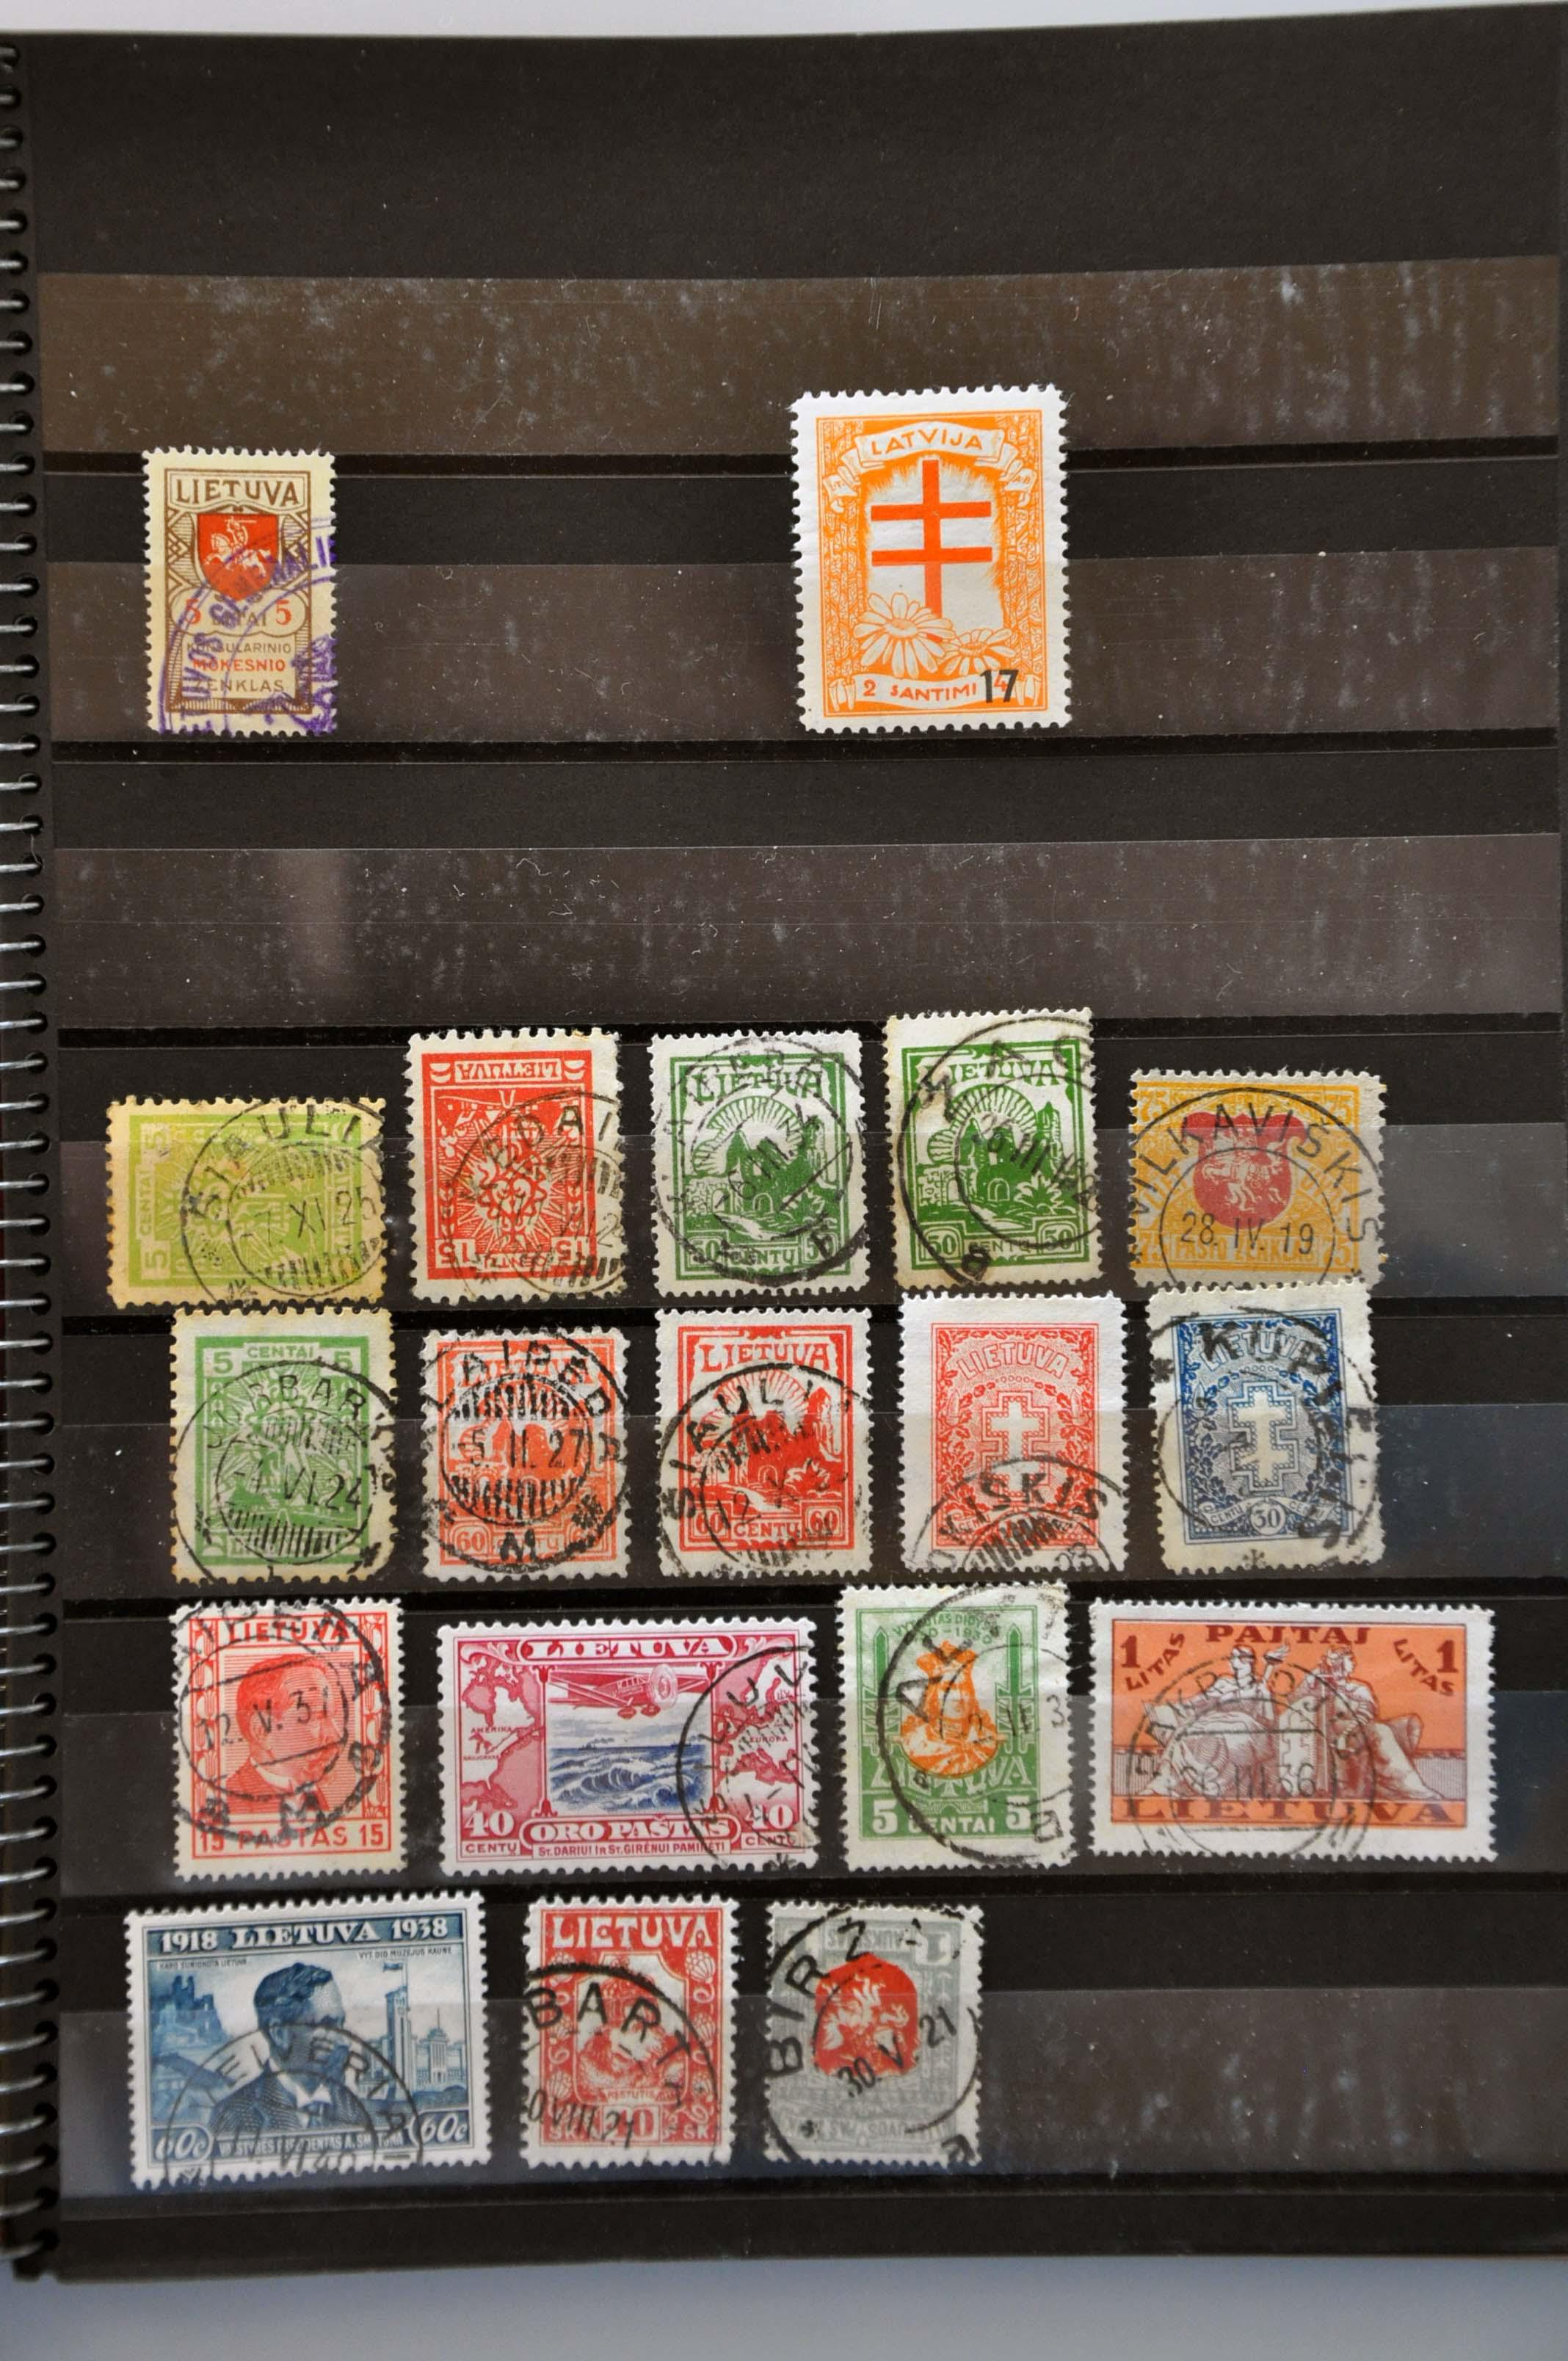 Lot 587 - baltic states baltic states -  Corinphila Veilingen Auction 245-246 Day 2 - Foreign countries - Collections and lots, Foreign countries - Boxes and literature